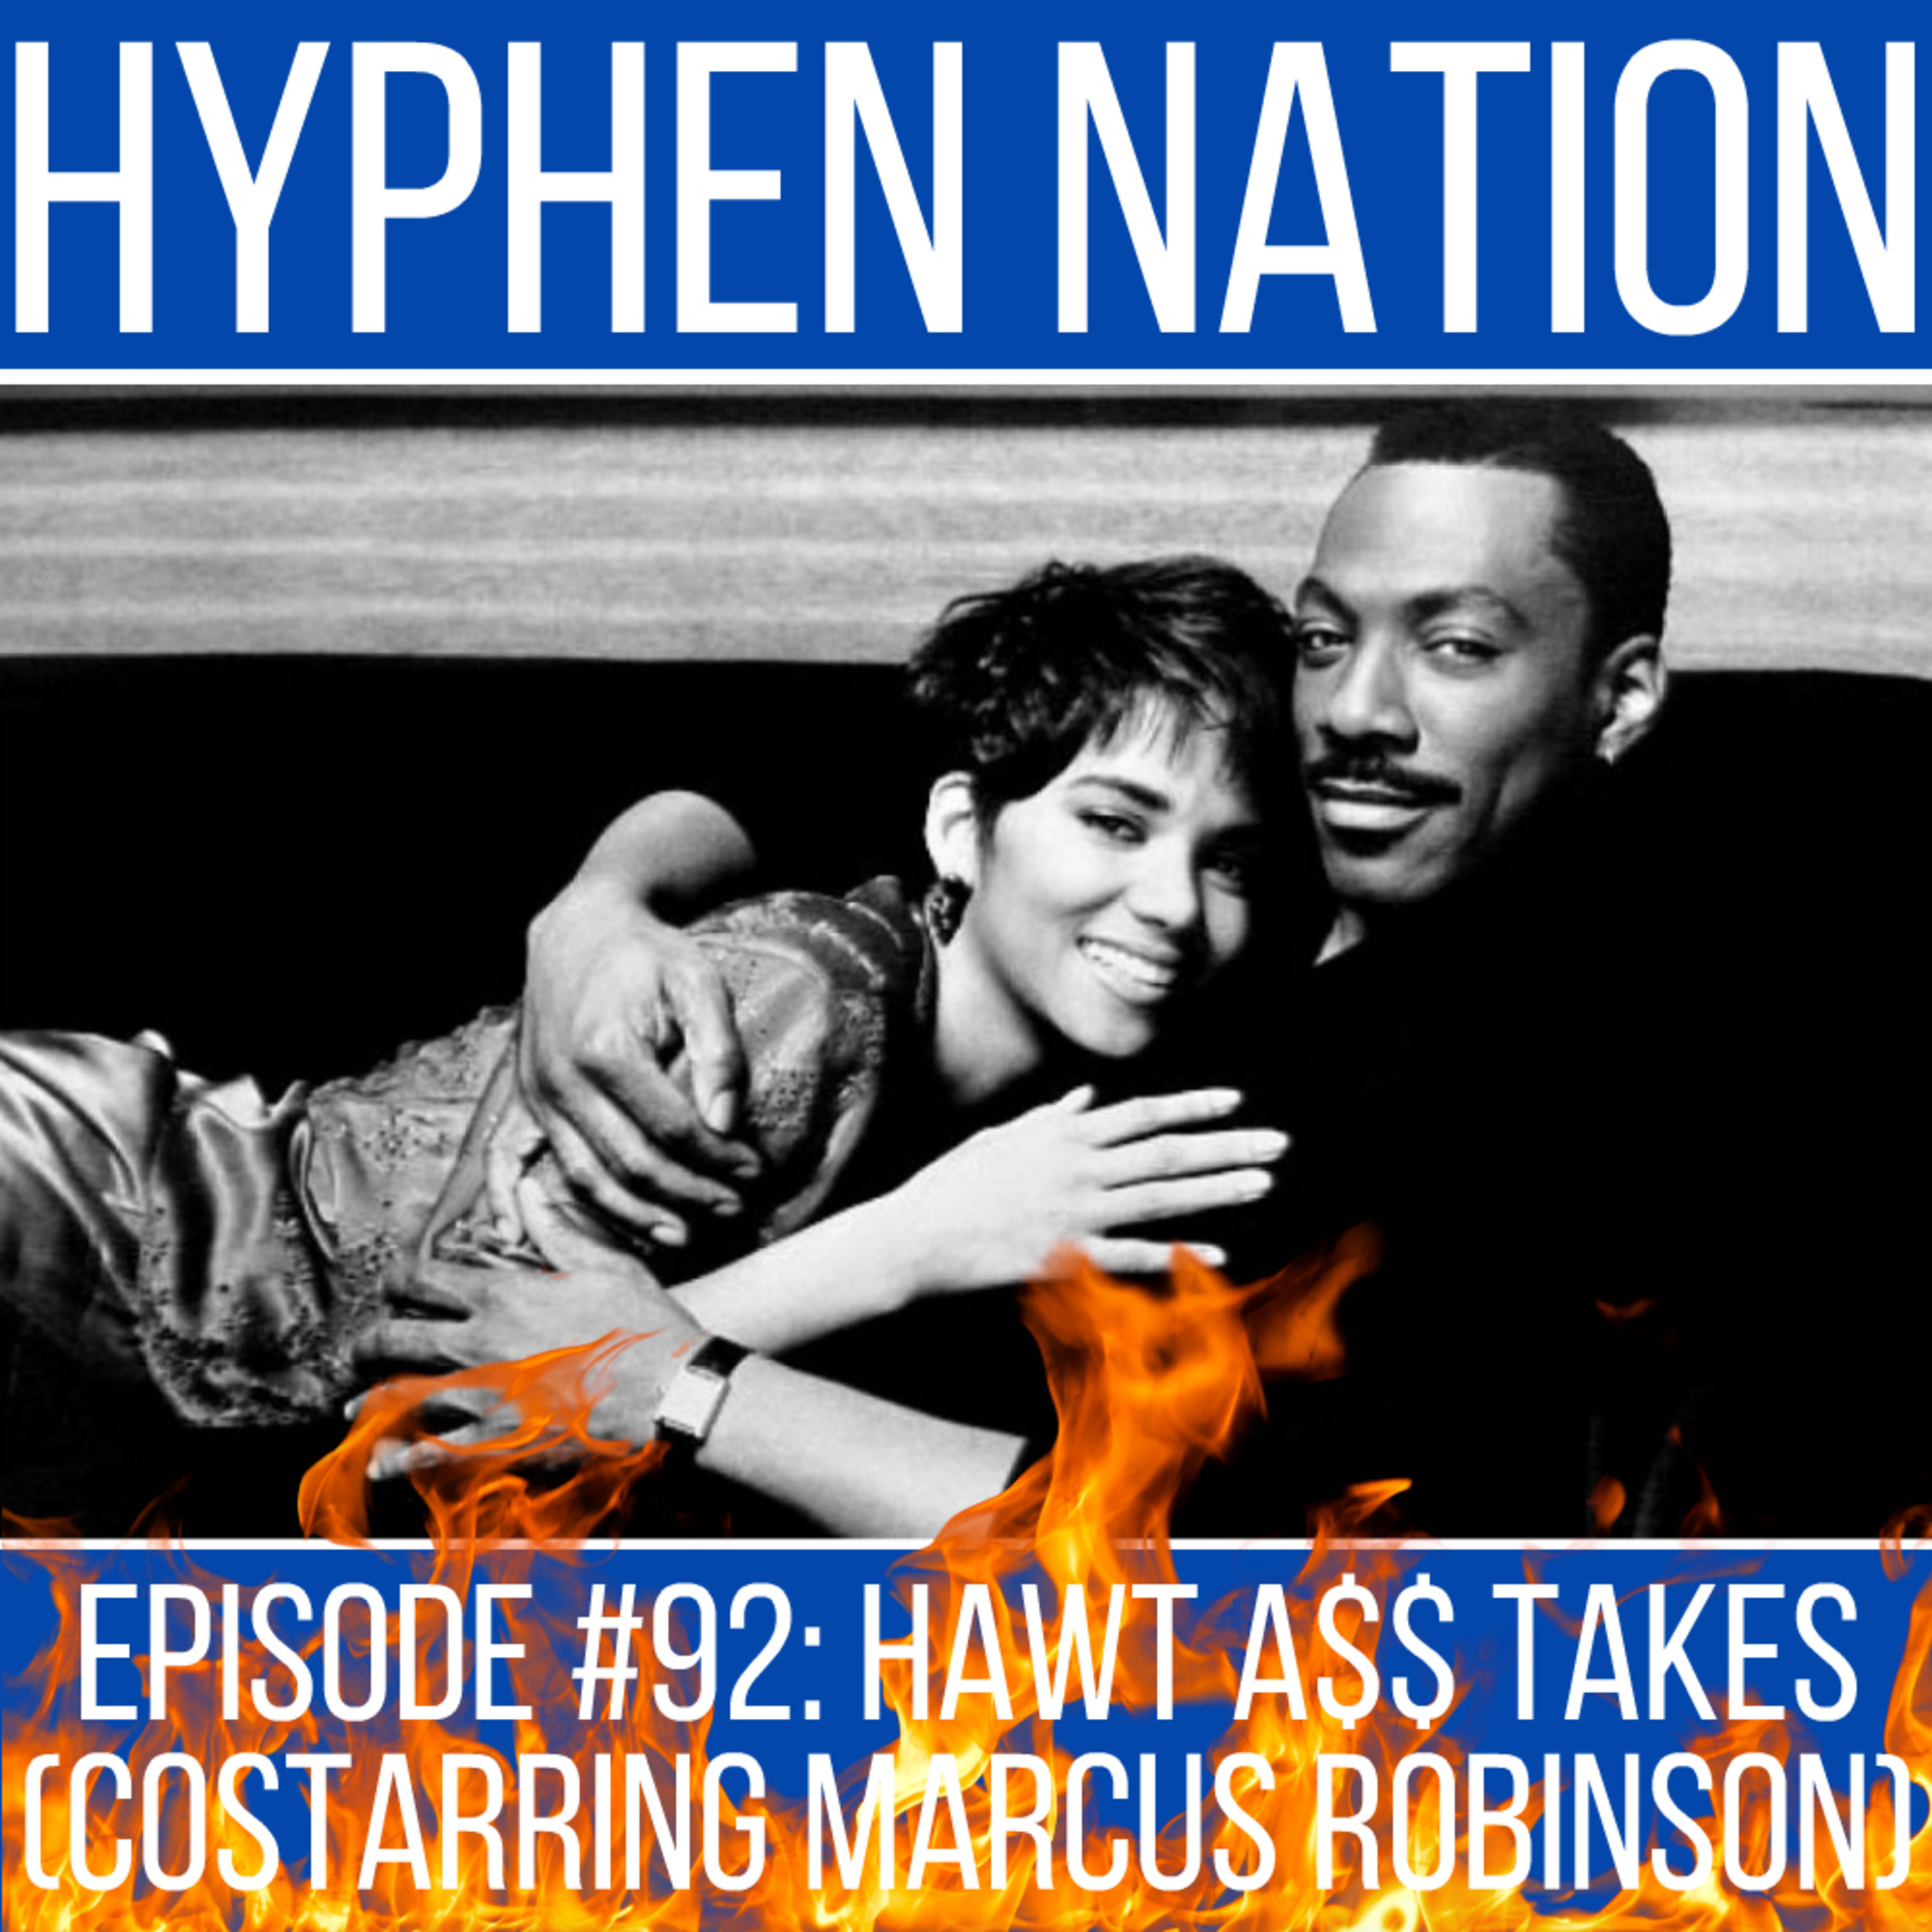 Episode #92: Hawt A$$ Takes (Costarring Marcus Robinson)